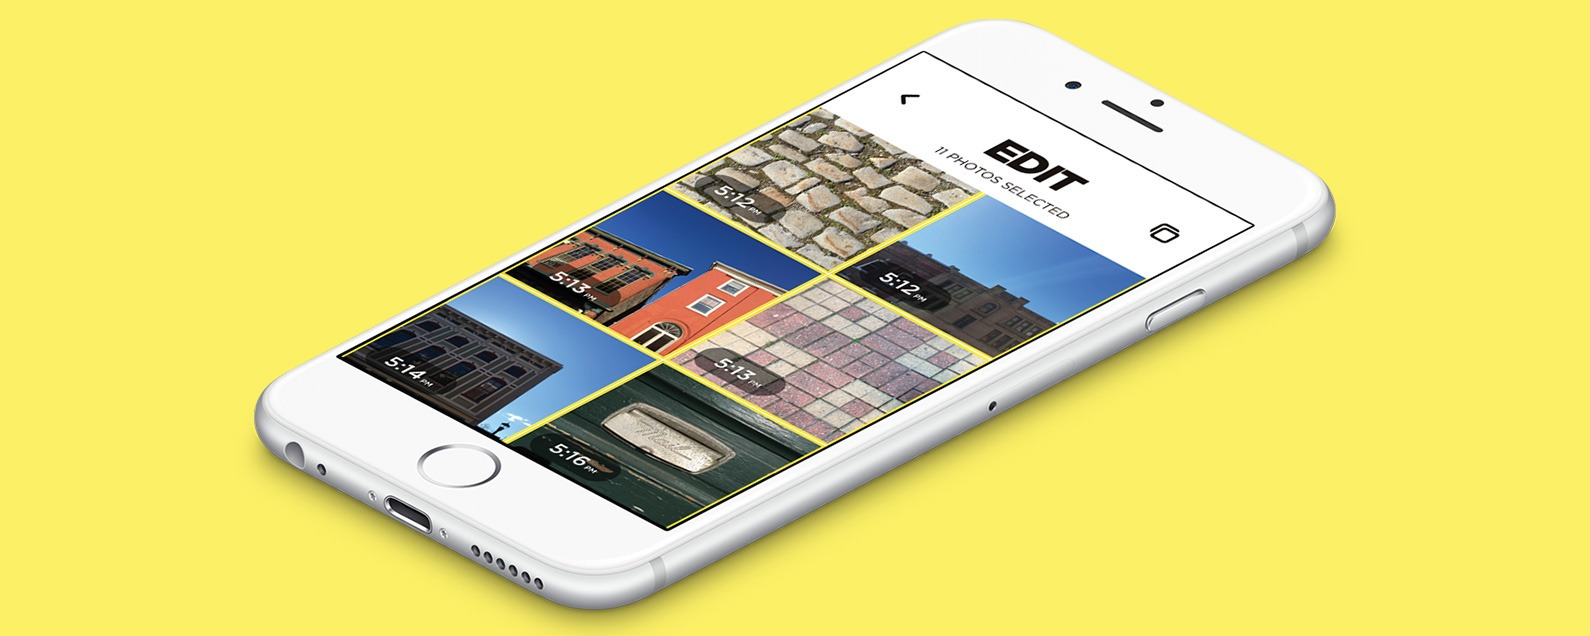 4 Best Free GIF-Maker Apps for iPhone